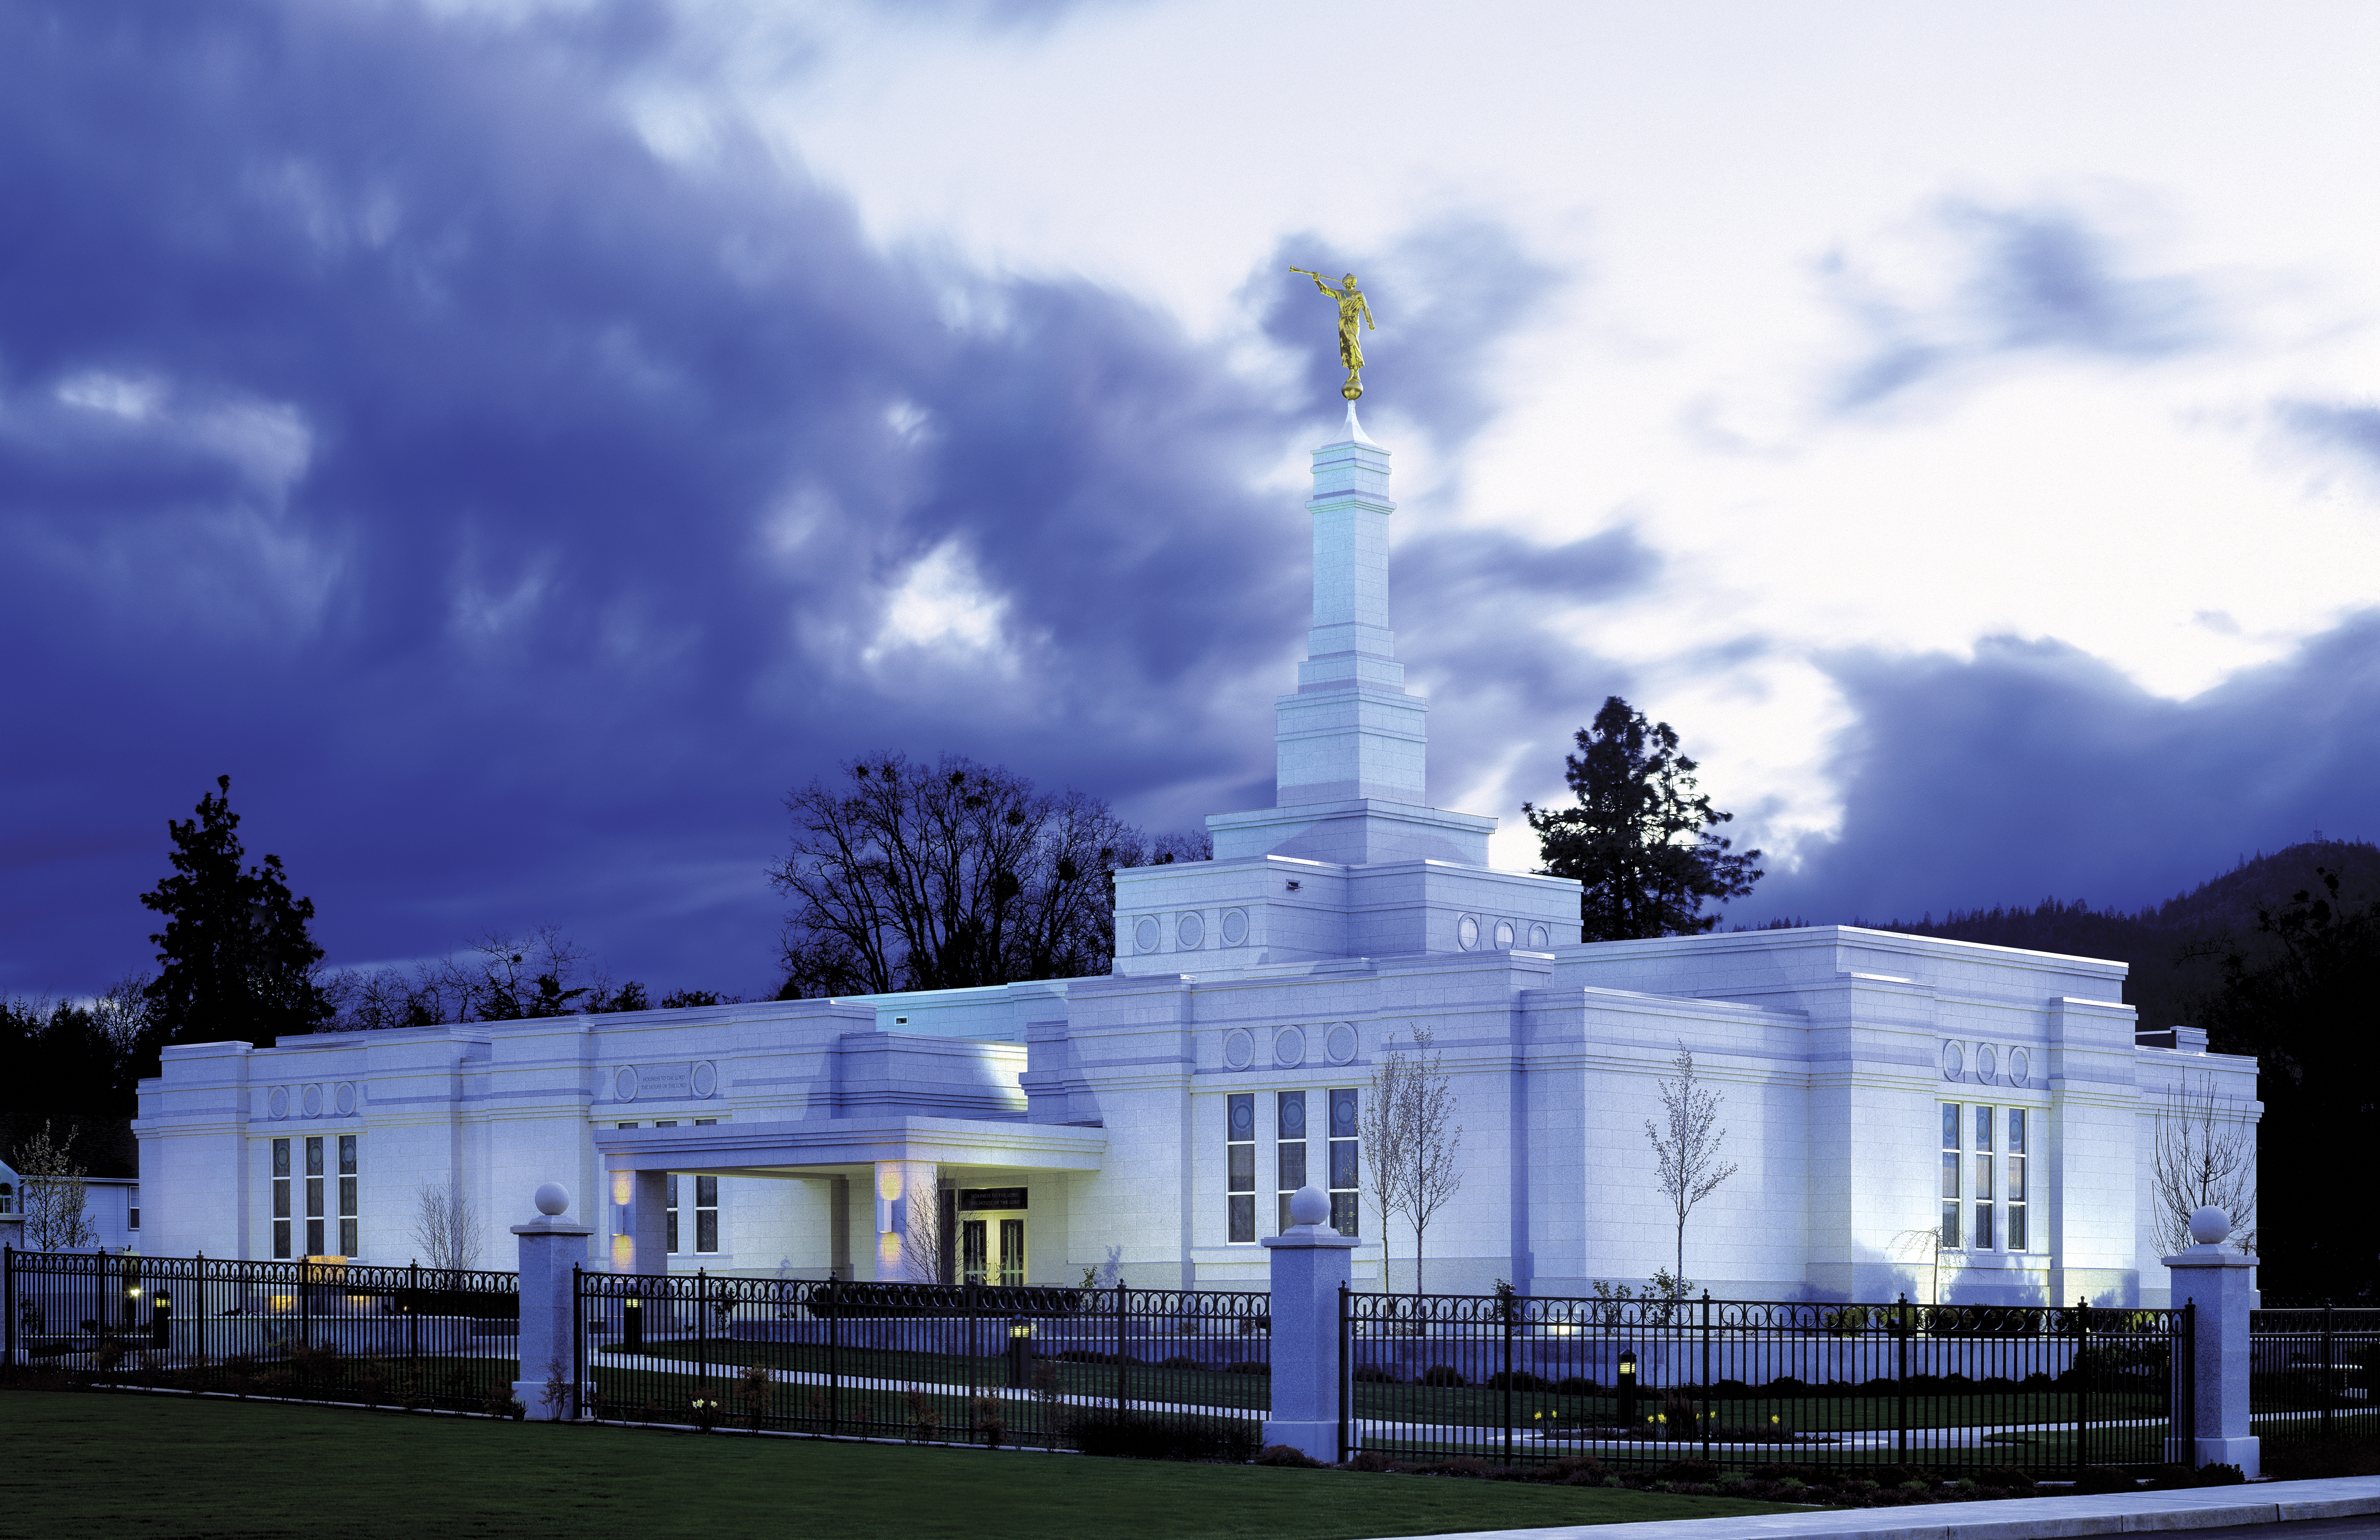 The Medford Oregon Temple in the evening, including the entrance and scenery.